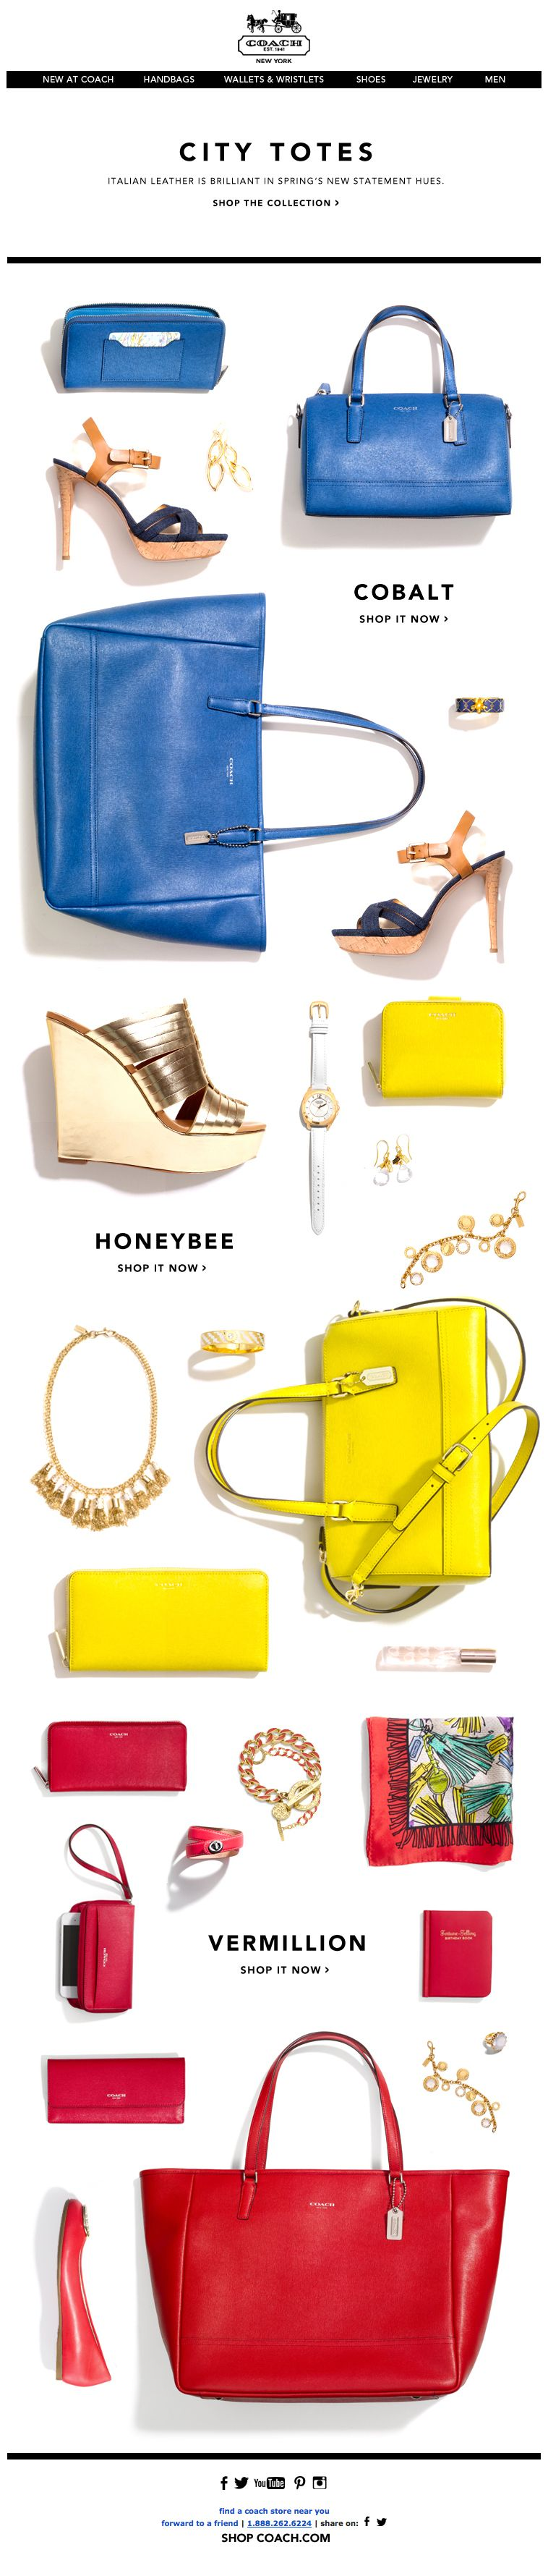 Coach : Color Story + Product Shots | Newsletters + Ads ...